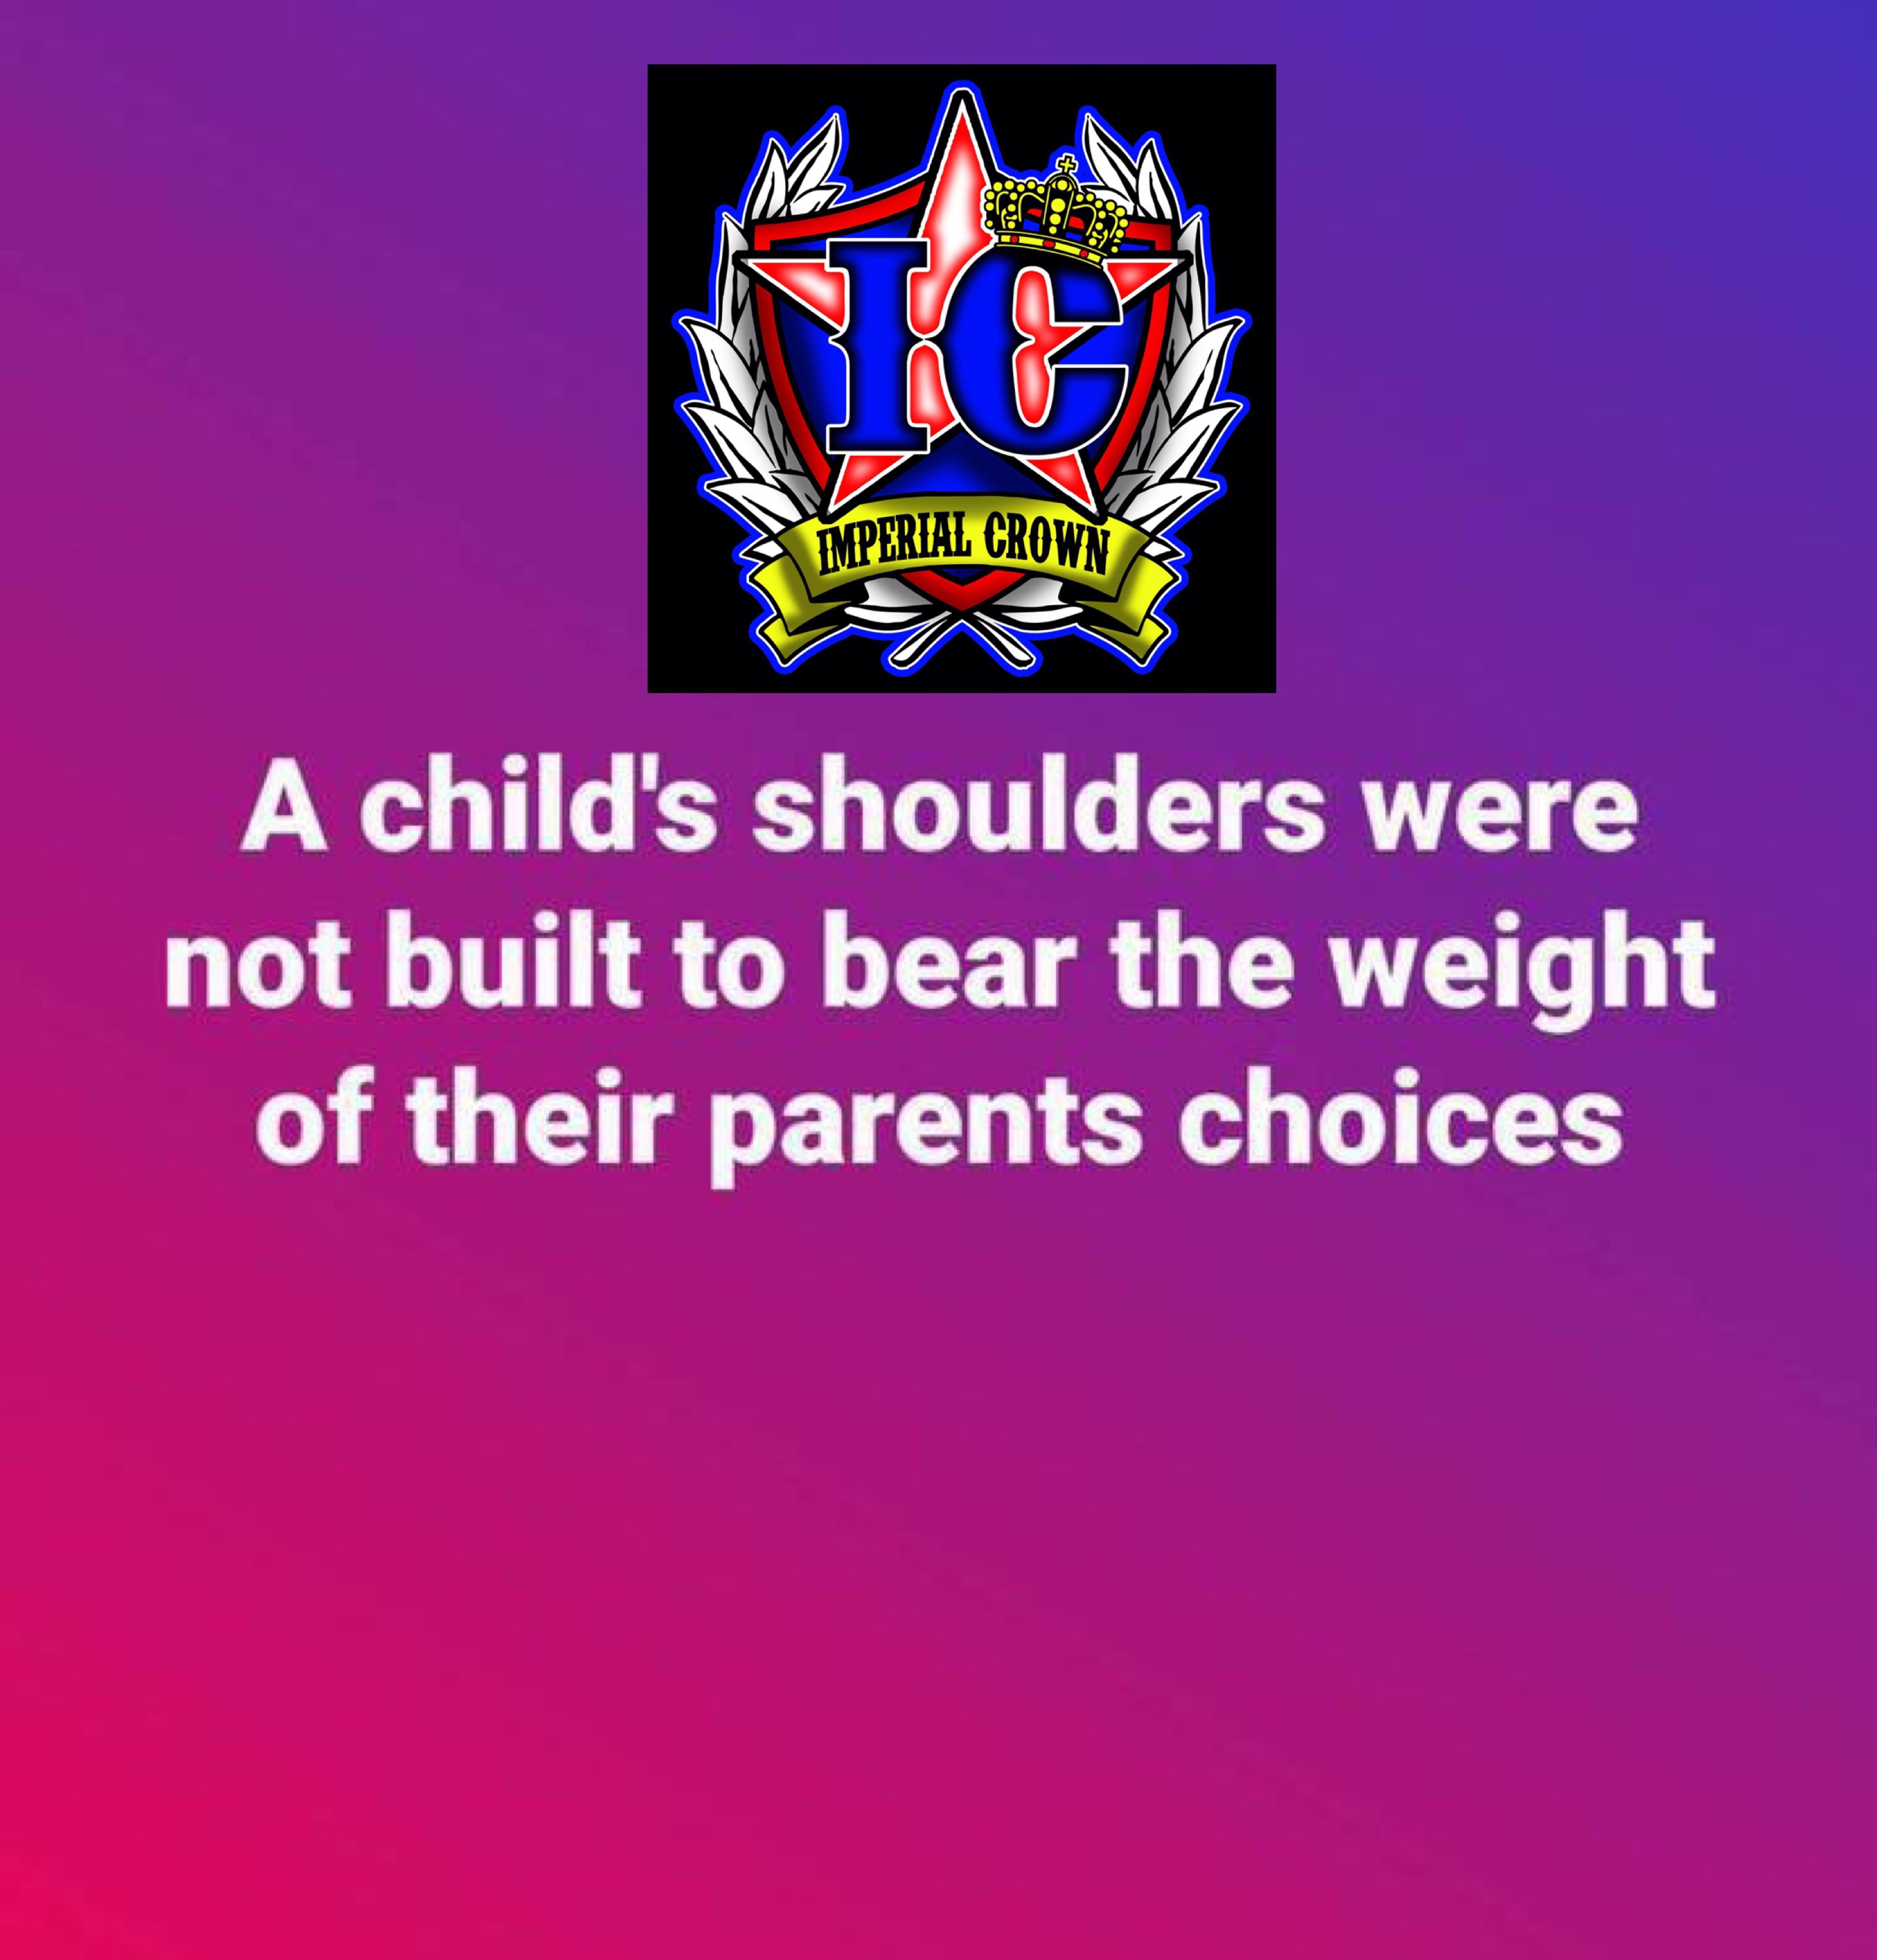 A child's shoulders were not built to bear the weight…